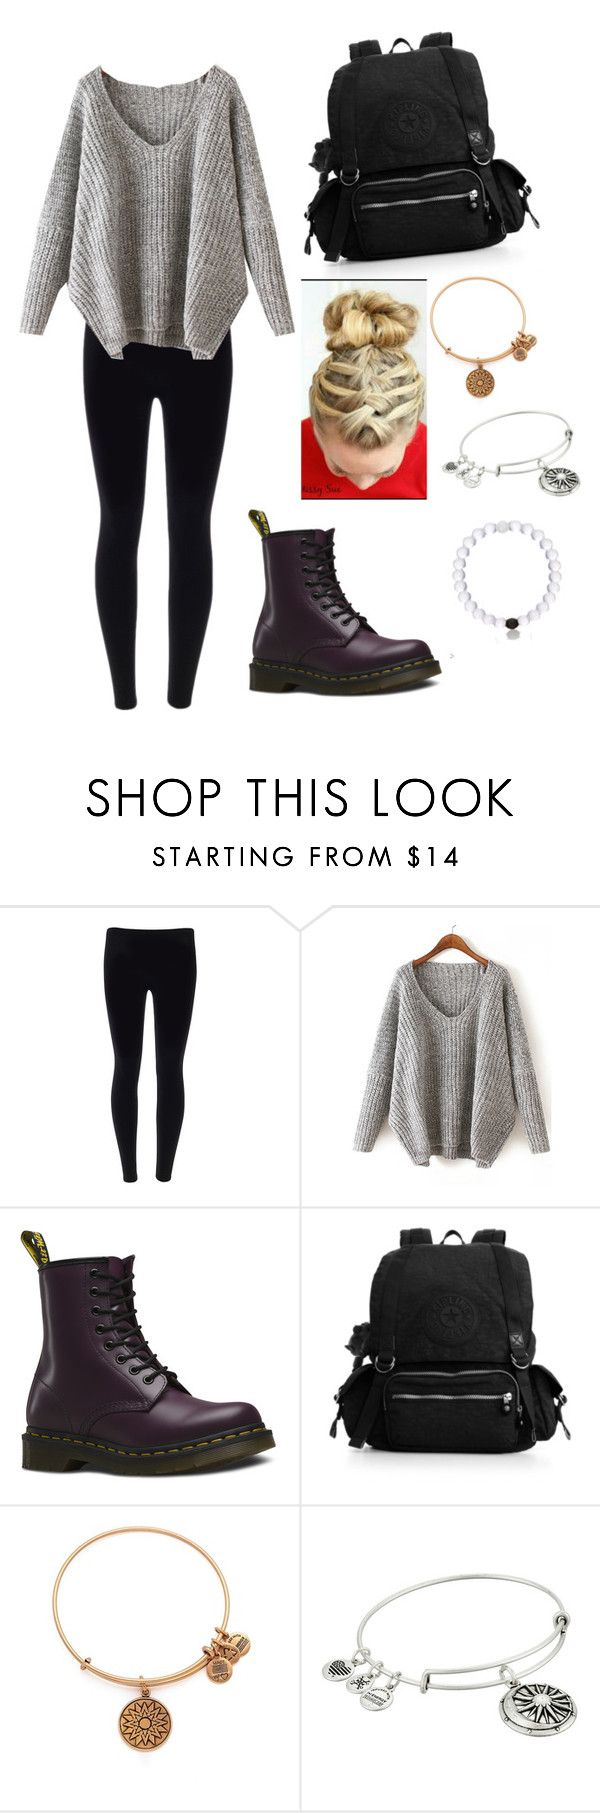 """Regular school day"" by carla1911 ❤ liked on Polyvore featuring Dr. Martens, Kipling, Alex and Ani, women's clothing, women, female, woman, misses and juniors"